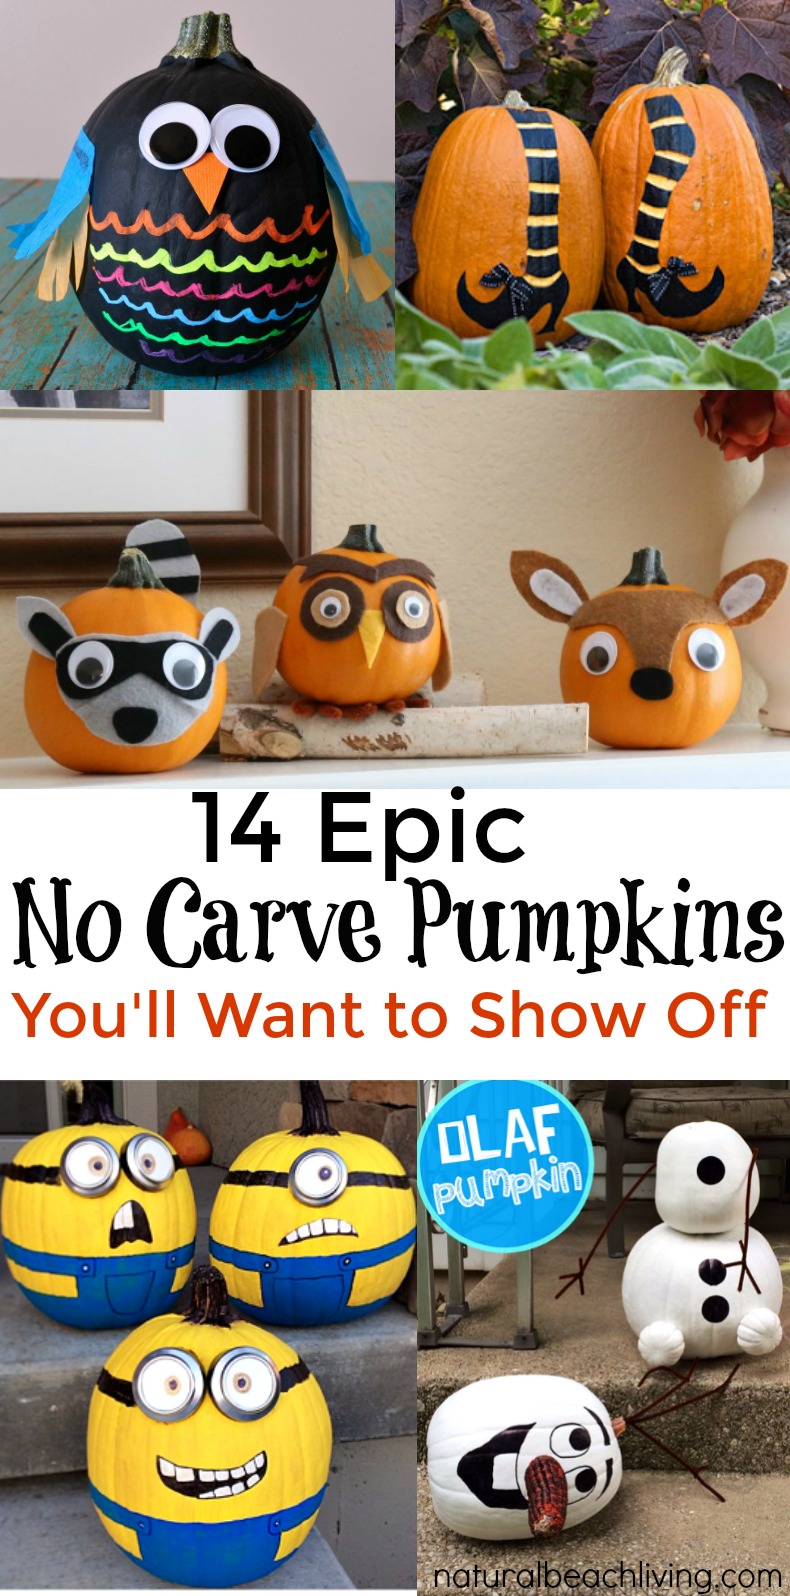 14 Epic No Carve Pumpkins You'll Want to Show Off